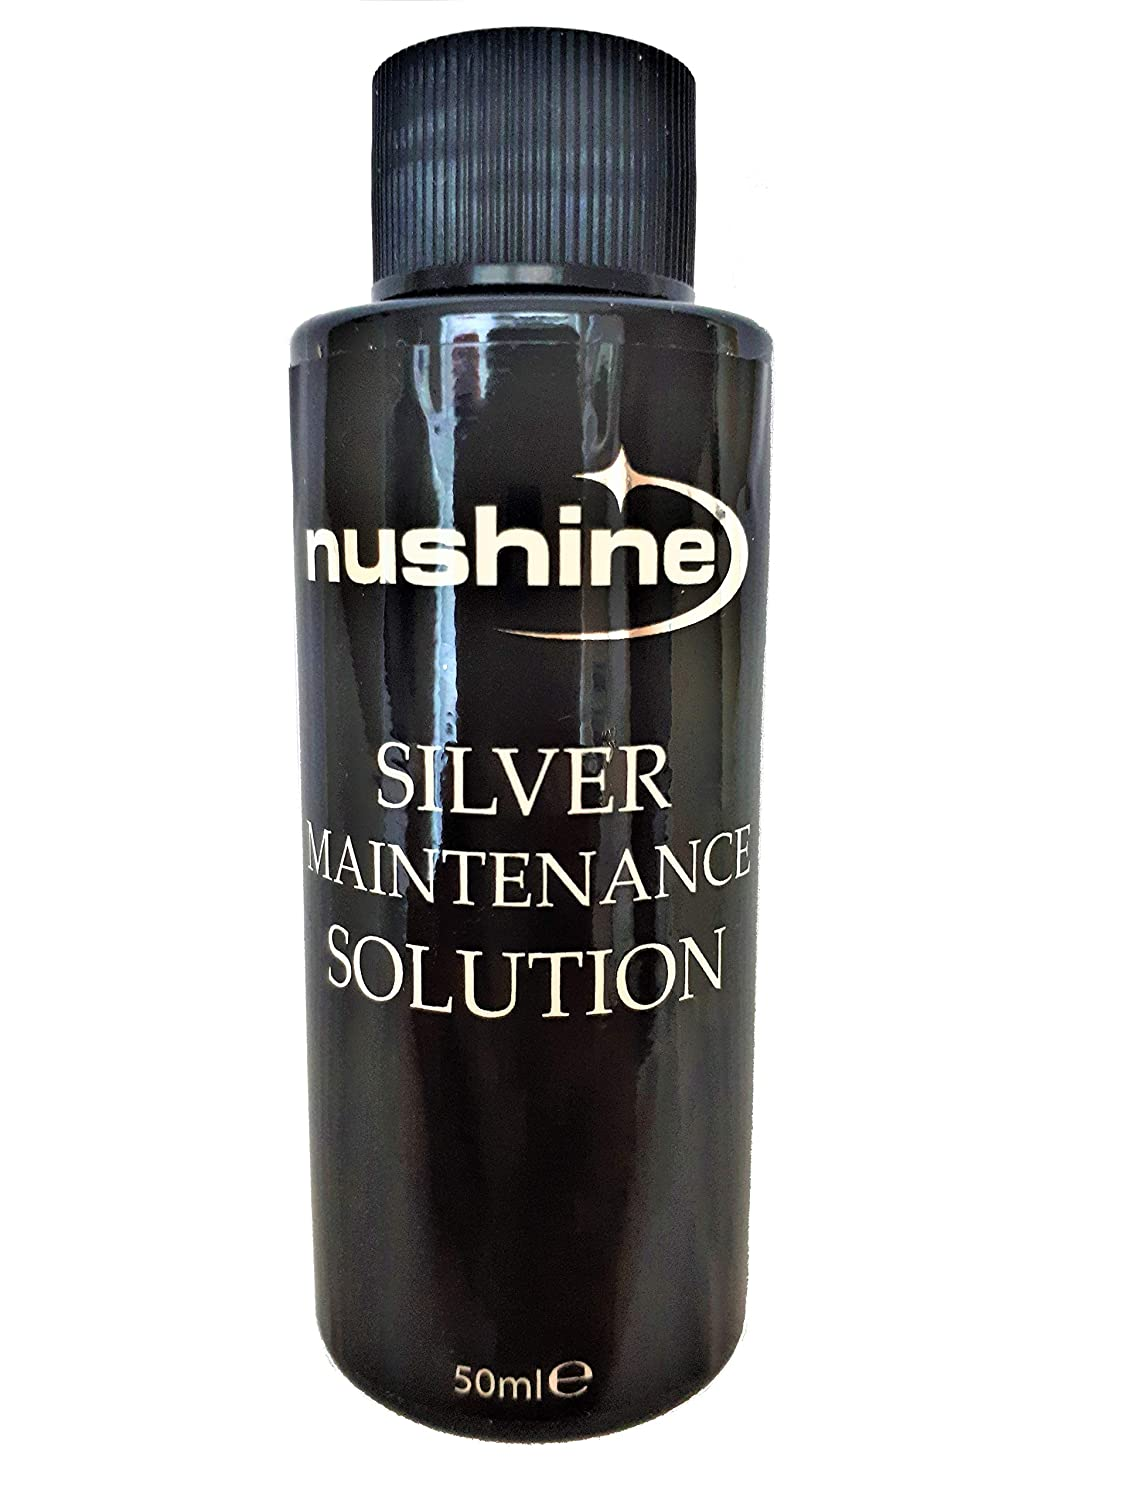 Nushine Silver Maintenance Solution 50ml - contains pure silver (ideal for worn silver)